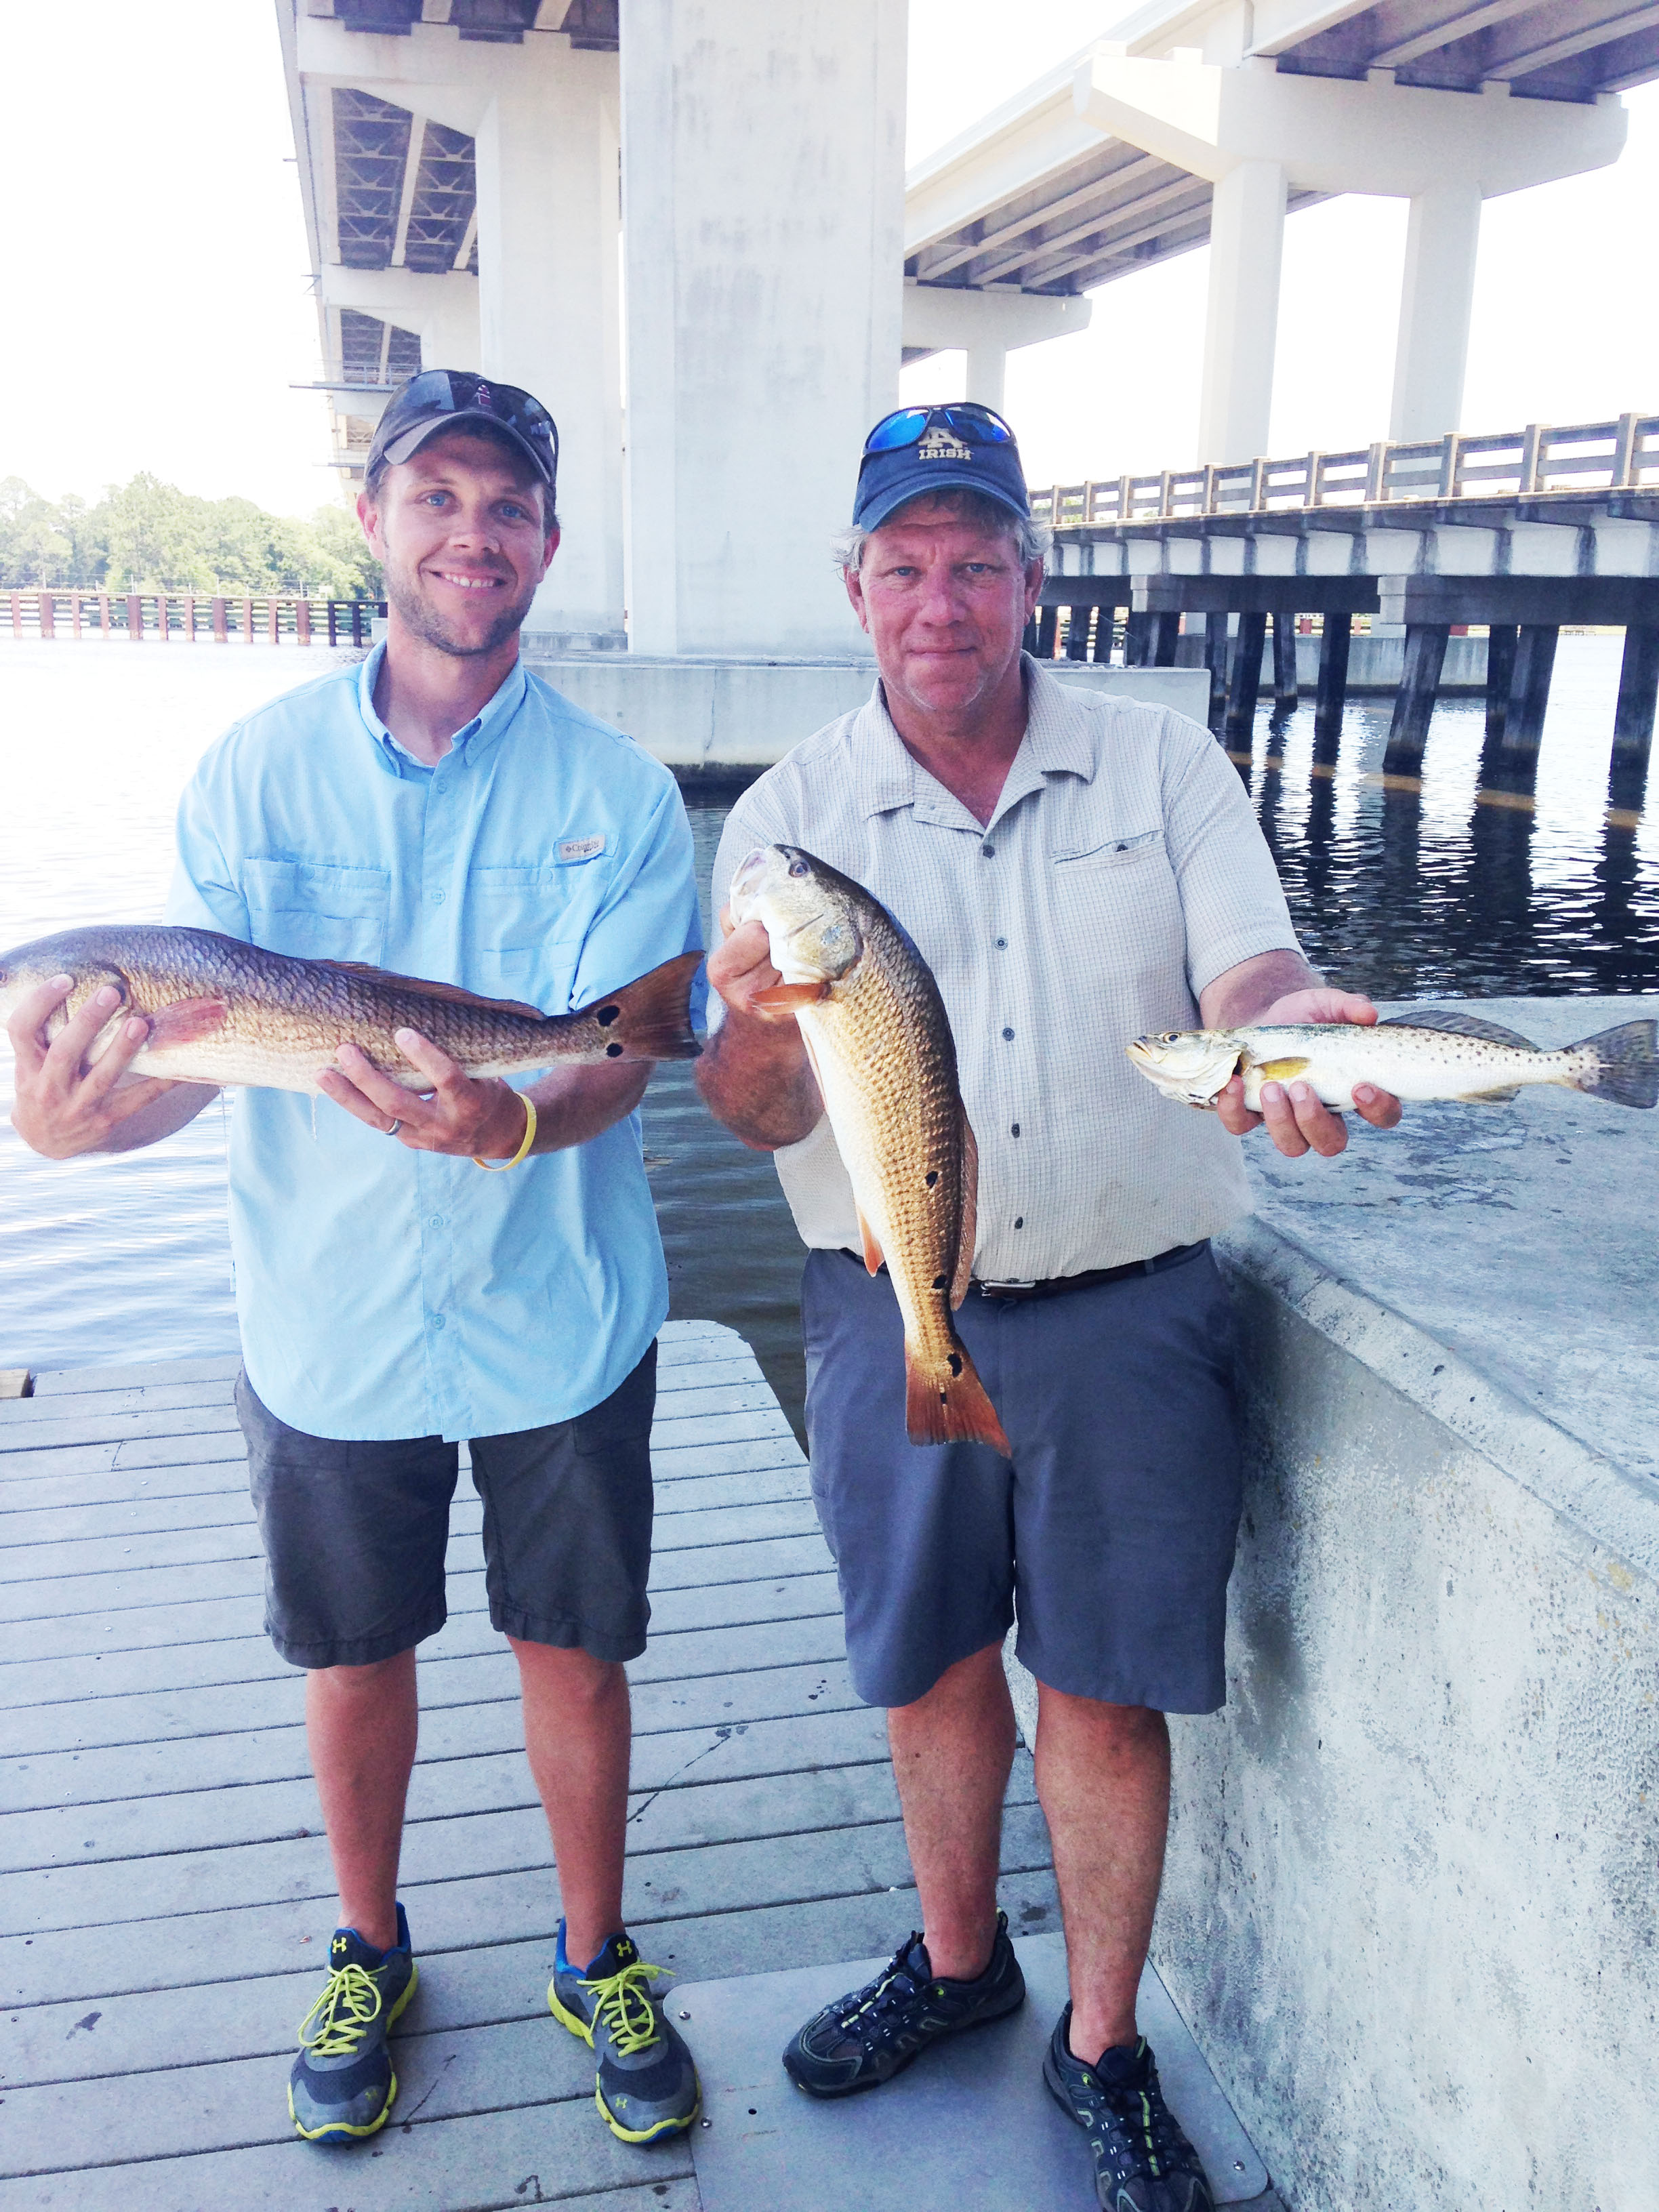 30A Fishing - Seagrove Fishing - Florida Boy Adventures